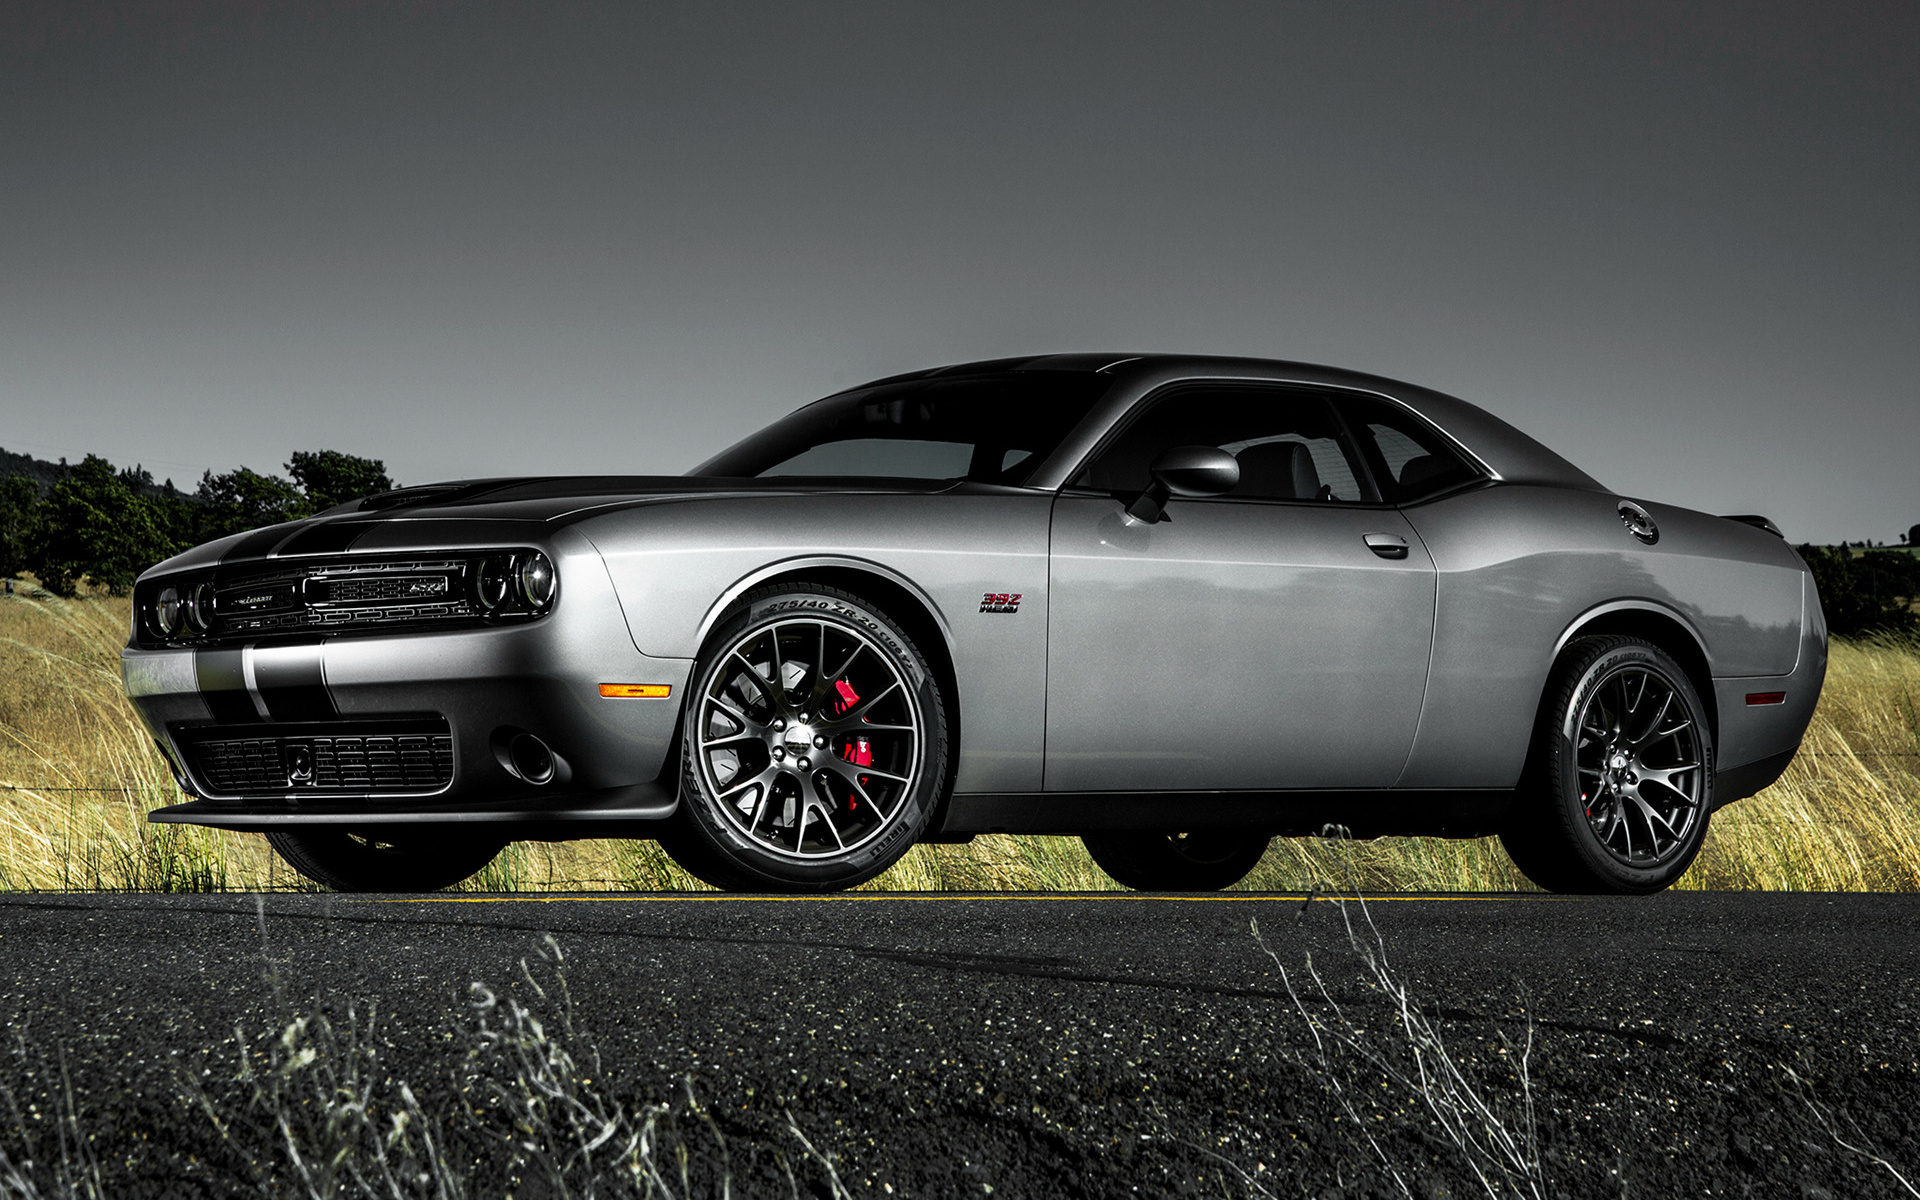 Dodge Challenger Srt 392 2015 Wallpapers And Hd Images